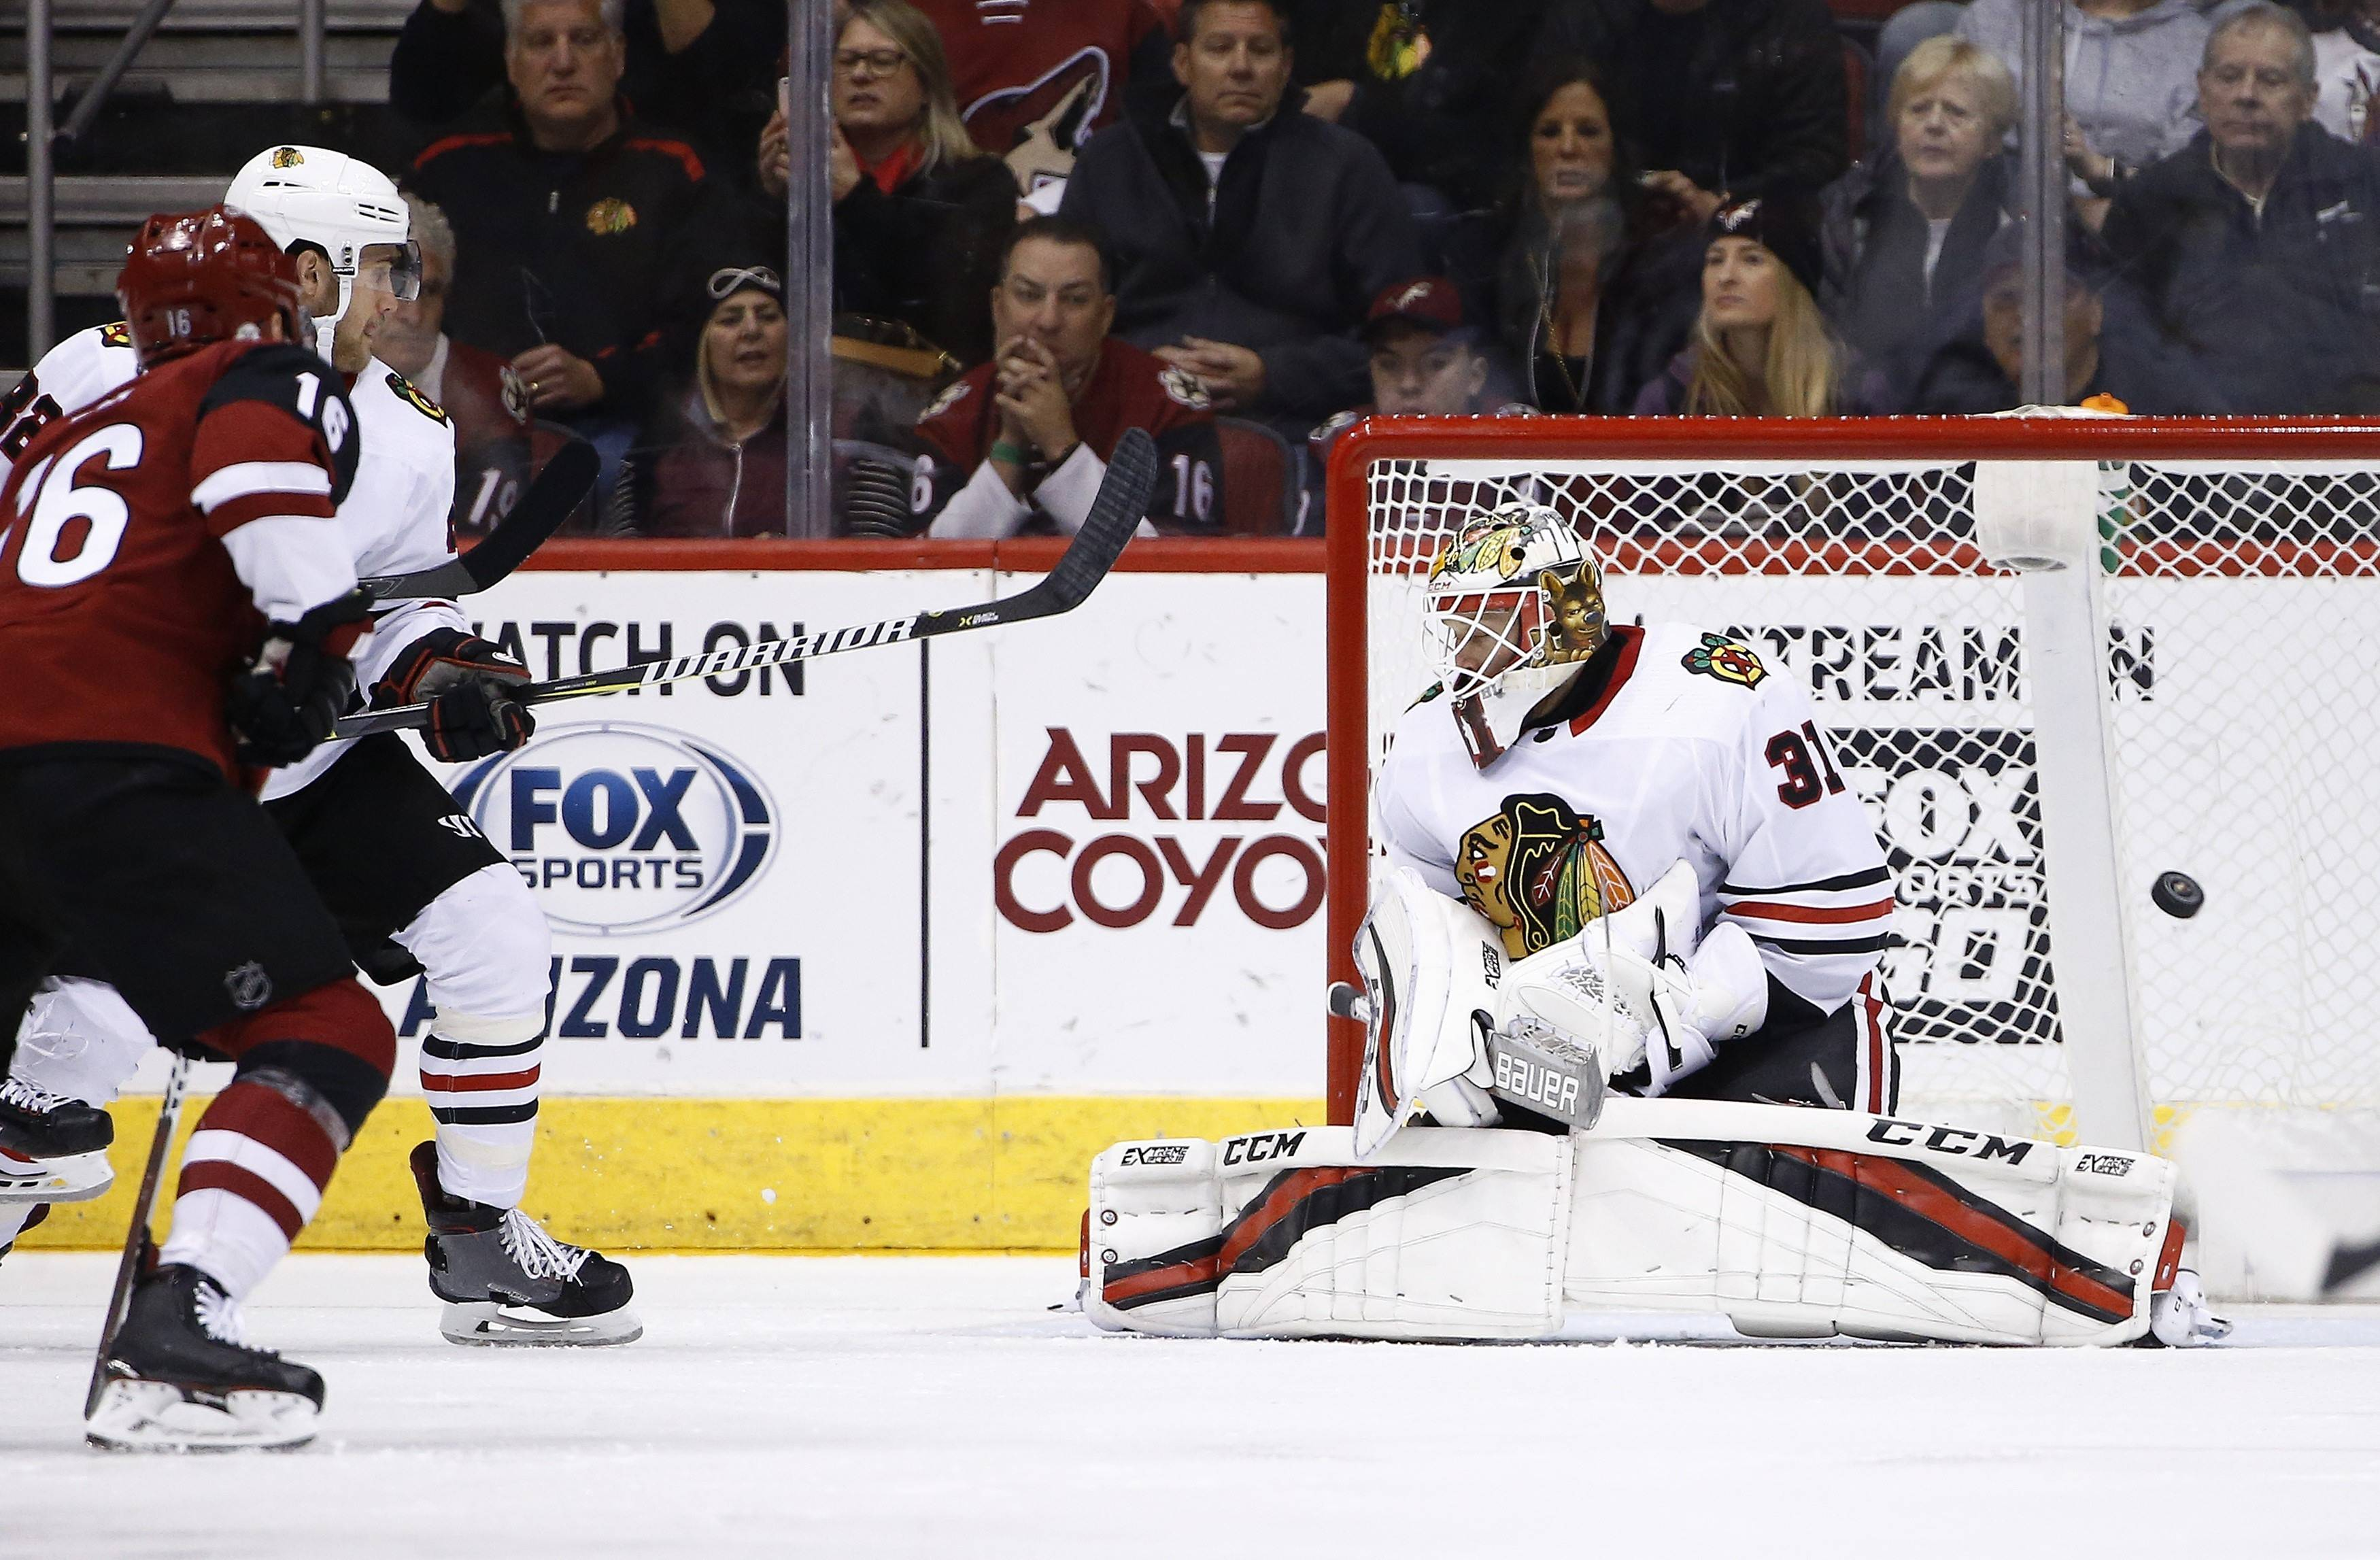 Arizona Coyotes left wing Max Domi (16) beats Chicago Blackhawks goaltender Anton Forsberg (31) for a goal as Blackhawks' Chicago Blackhawks defenseman Jordan Oesterle, back left, looks on during the first period of an NHL hockey game Monday, Feb. 12, 2018, in Glendale, Ariz.